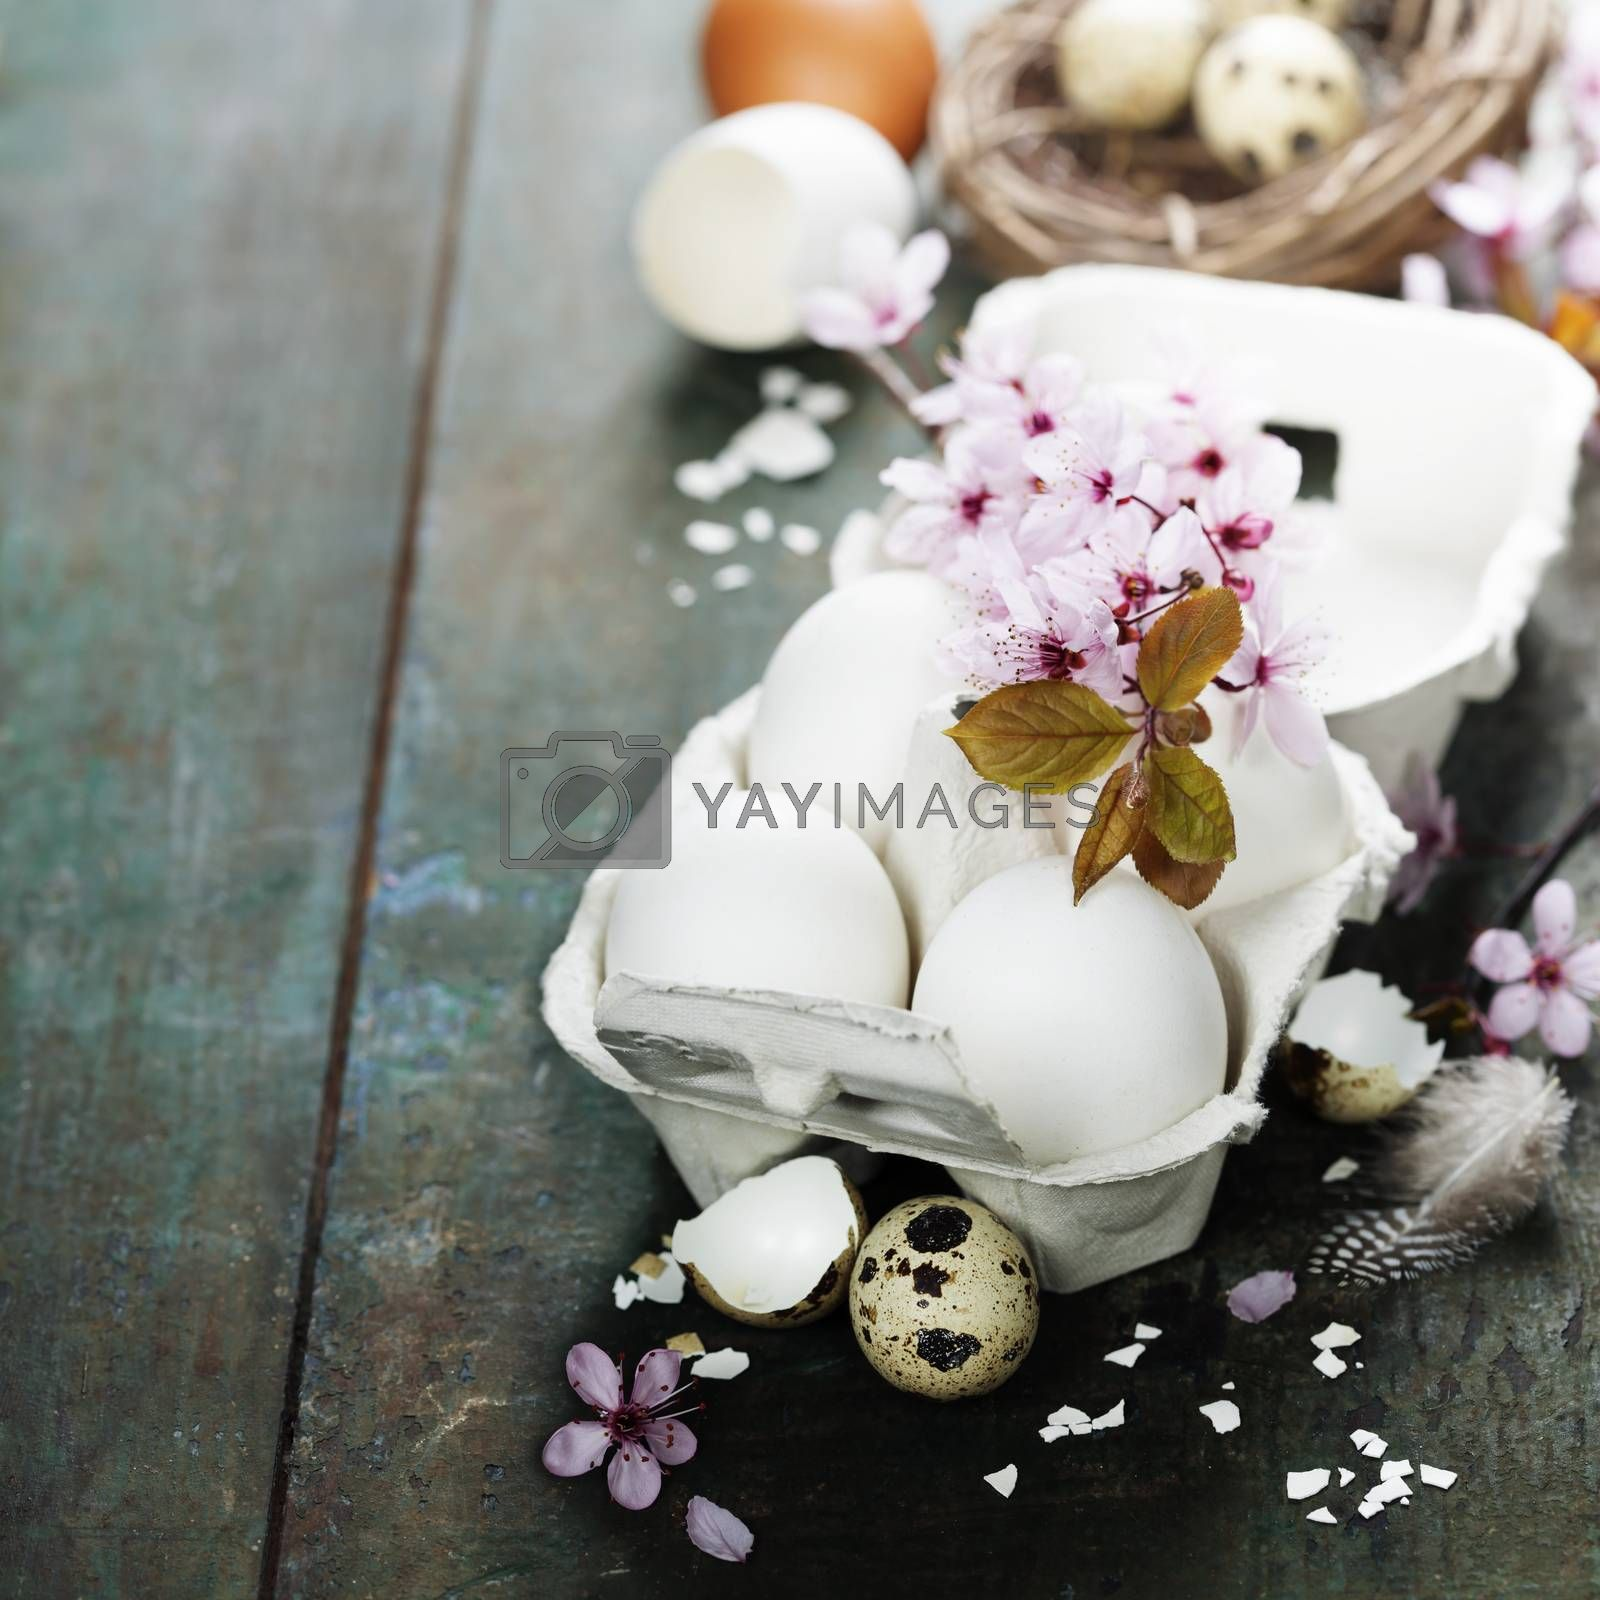 Easter eggs and spring cherry blossoms on wooden table